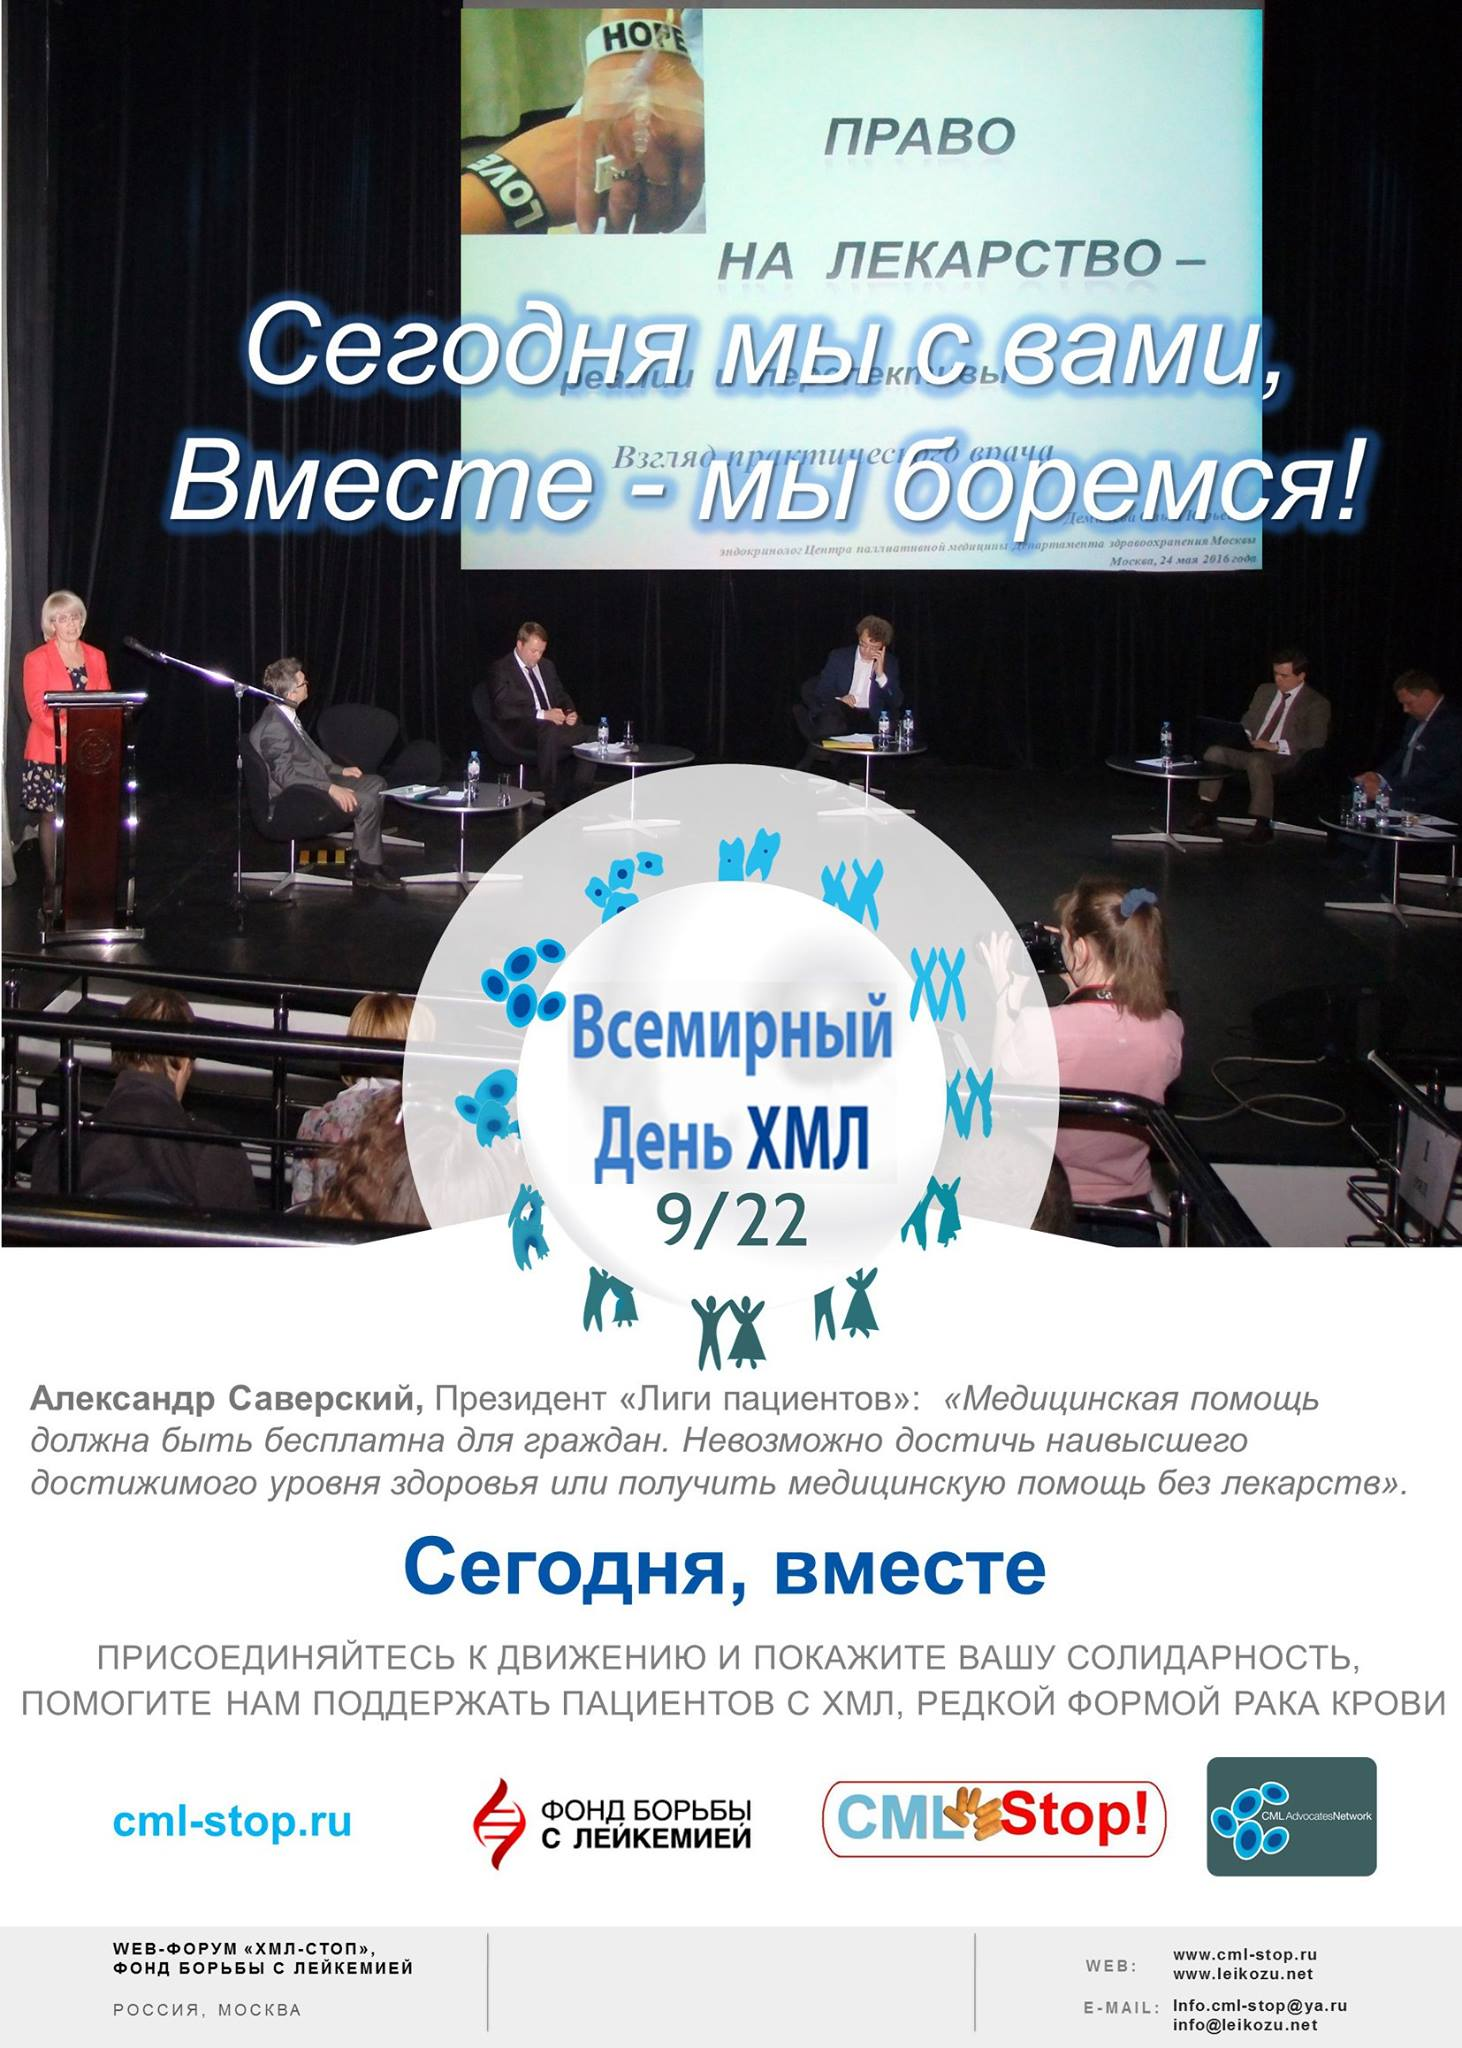 WCMLD Poster CML Stop Russia 2 2016